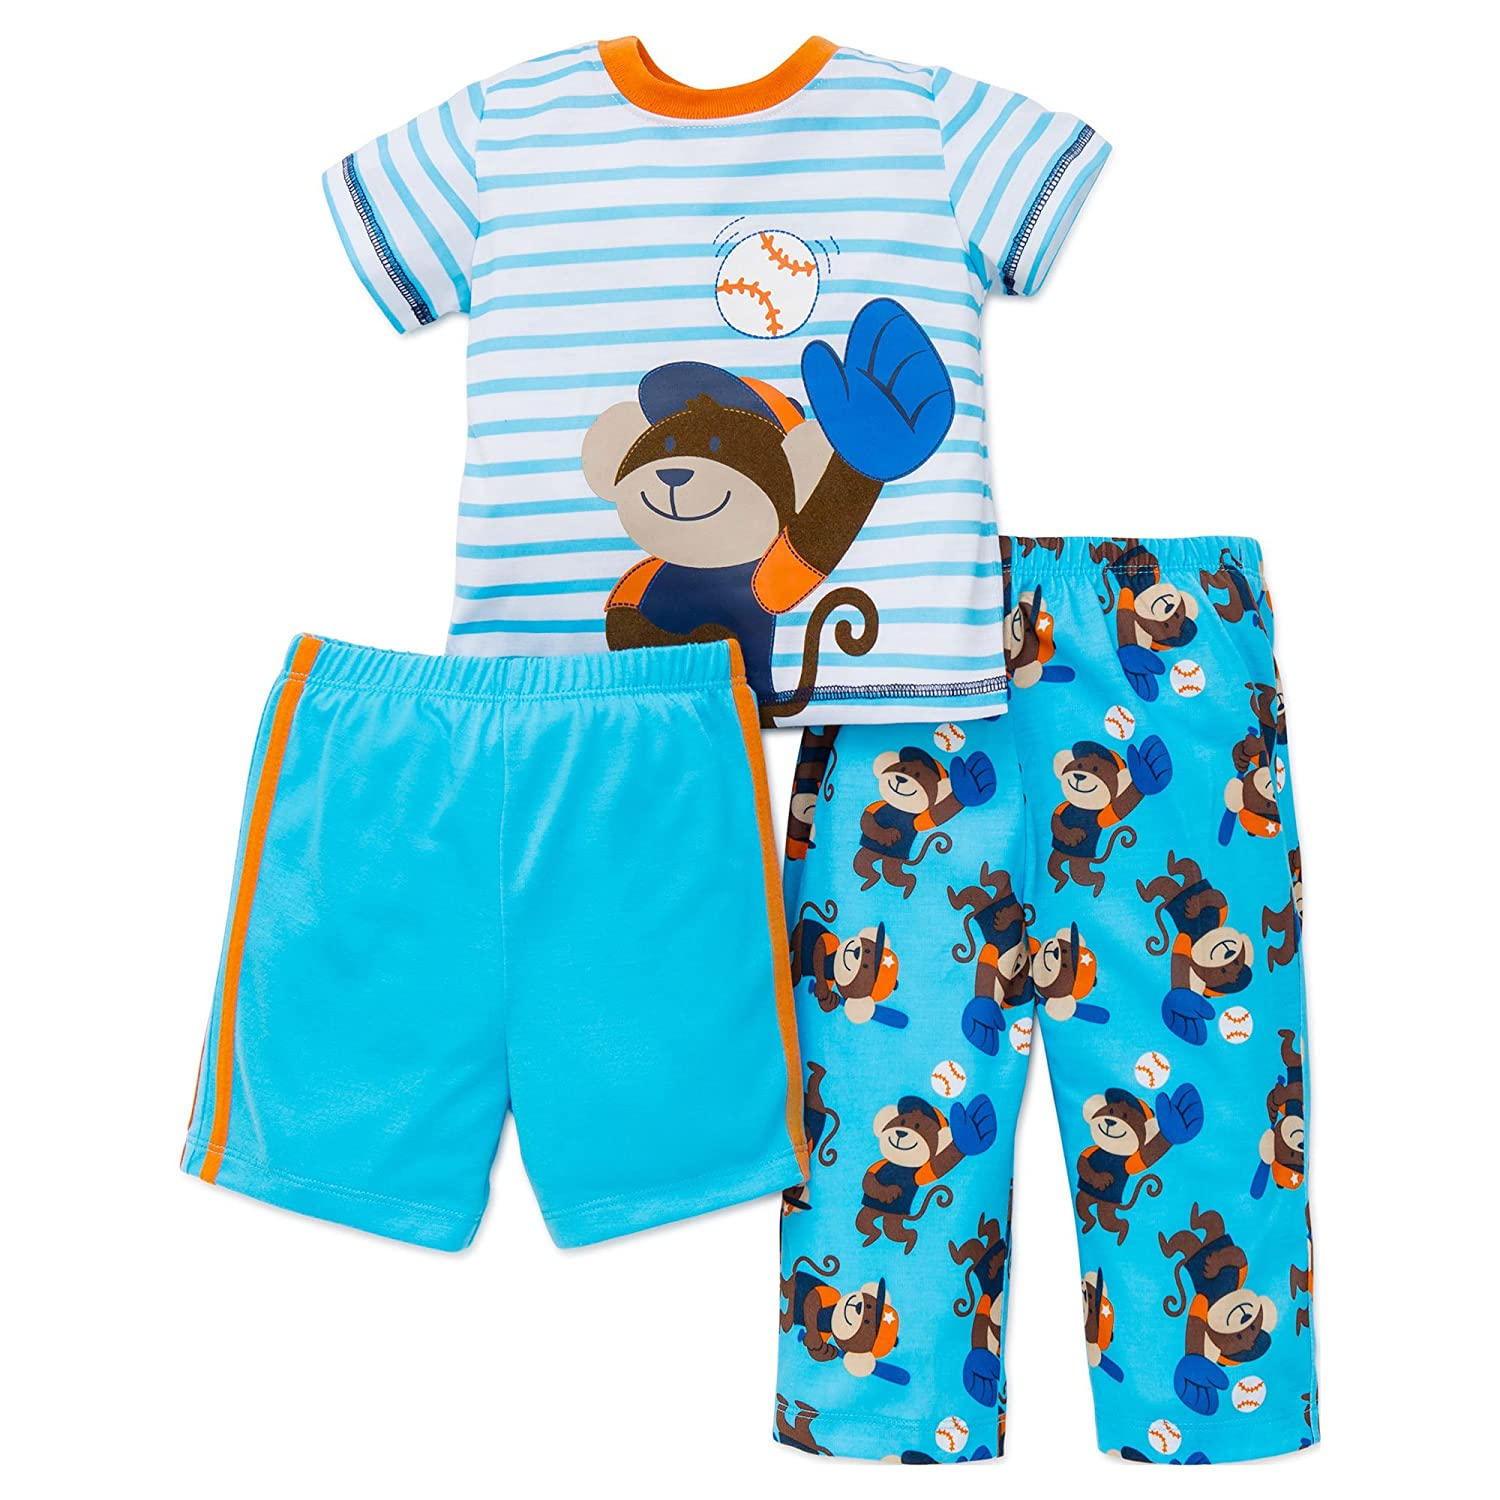 Little Me Boys Pajamas 3 Piece Sleepwear Light-Weight Infant and Toddler PJs